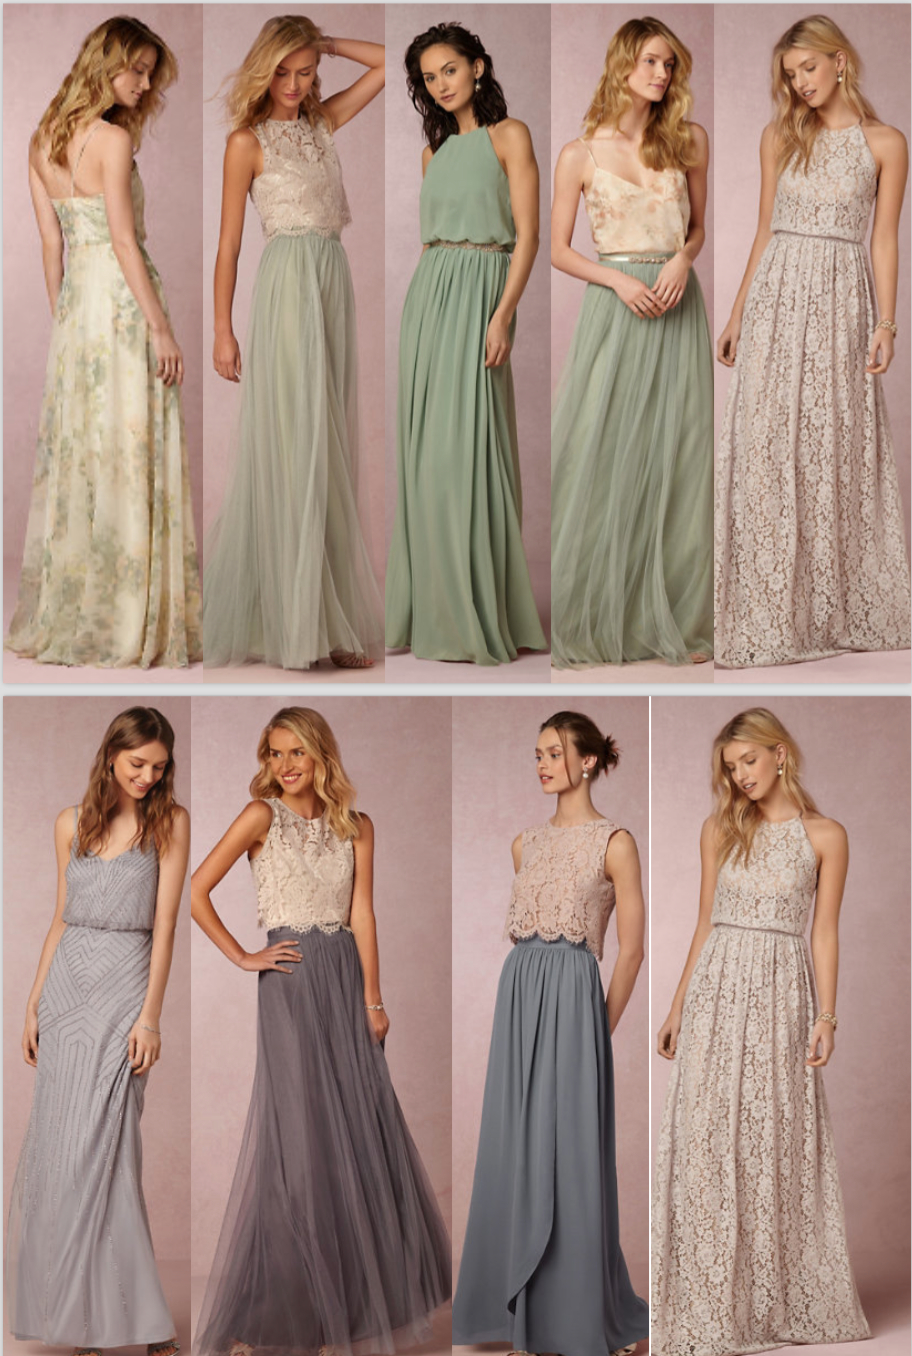 Shelbs' Creativity Shining Through. Bridesmaid Dress Ideas